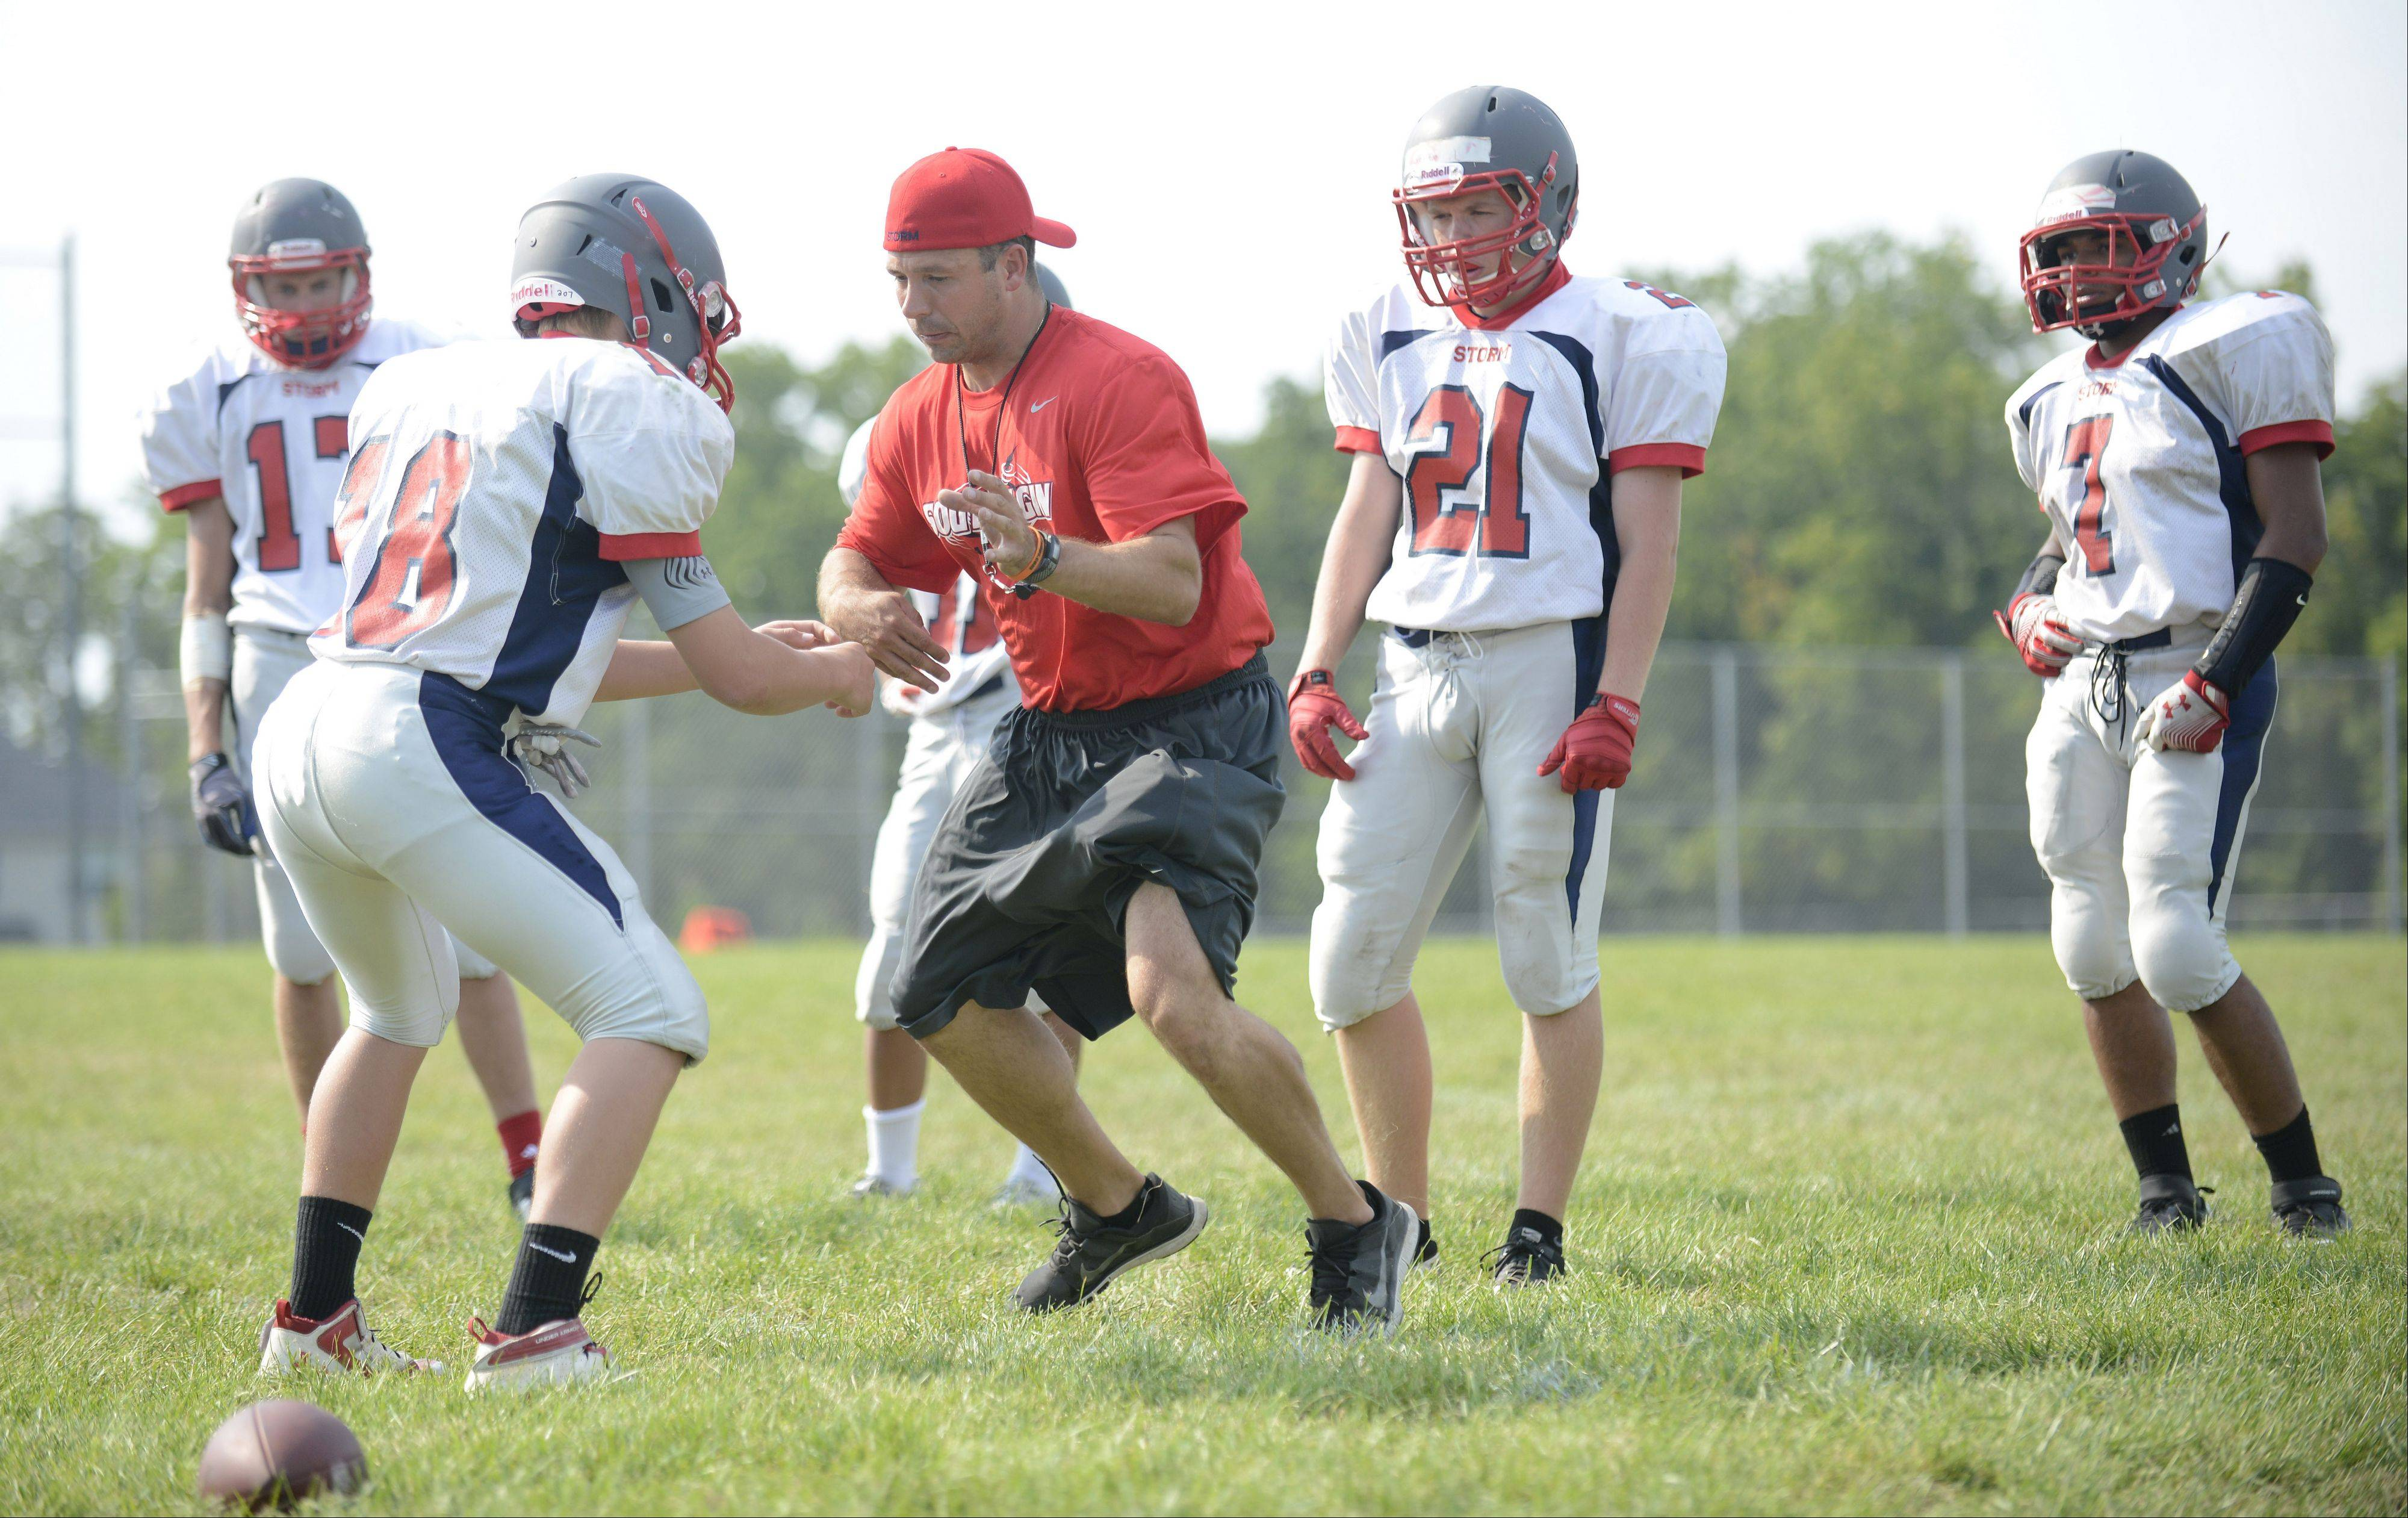 New South Elgin varsity football coach Pat Pistorio shows players how to break away from an opponent's grip during practice.